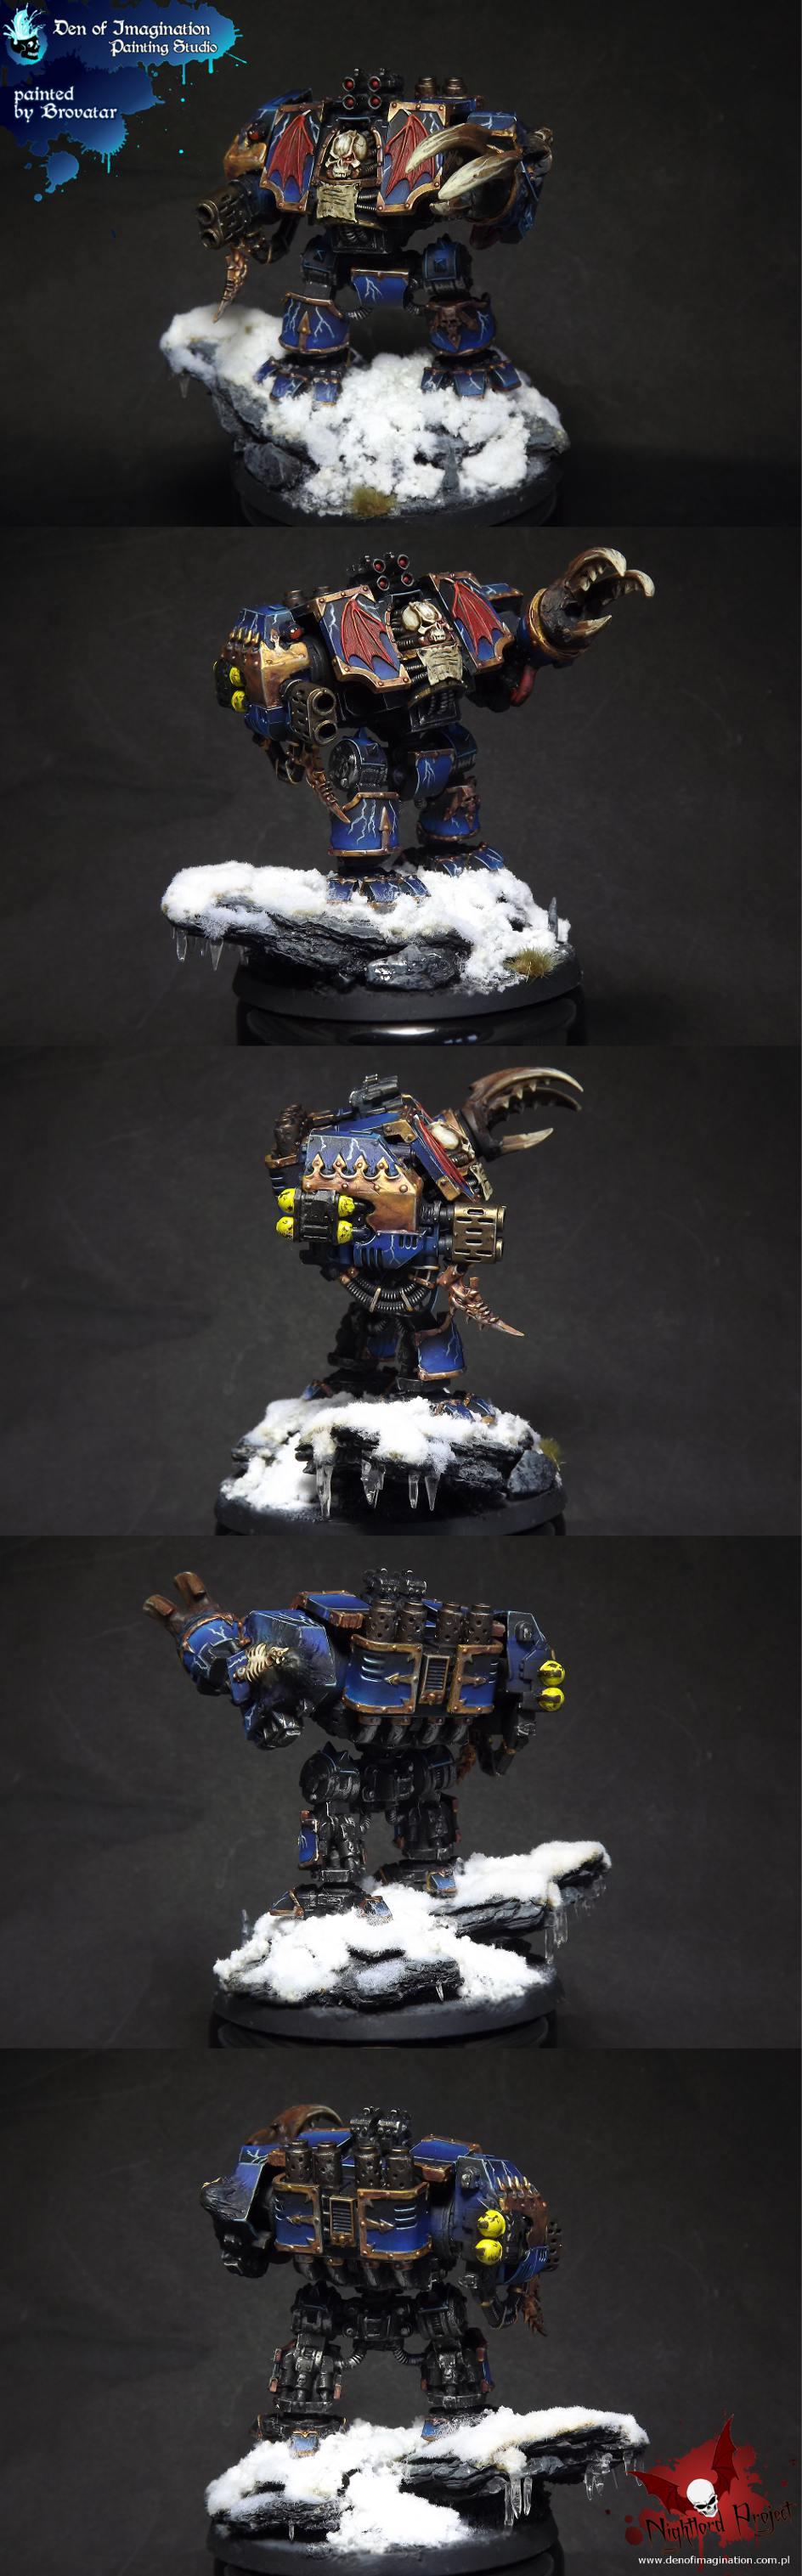 Chaos Space Marines Nightlord Dreadnought